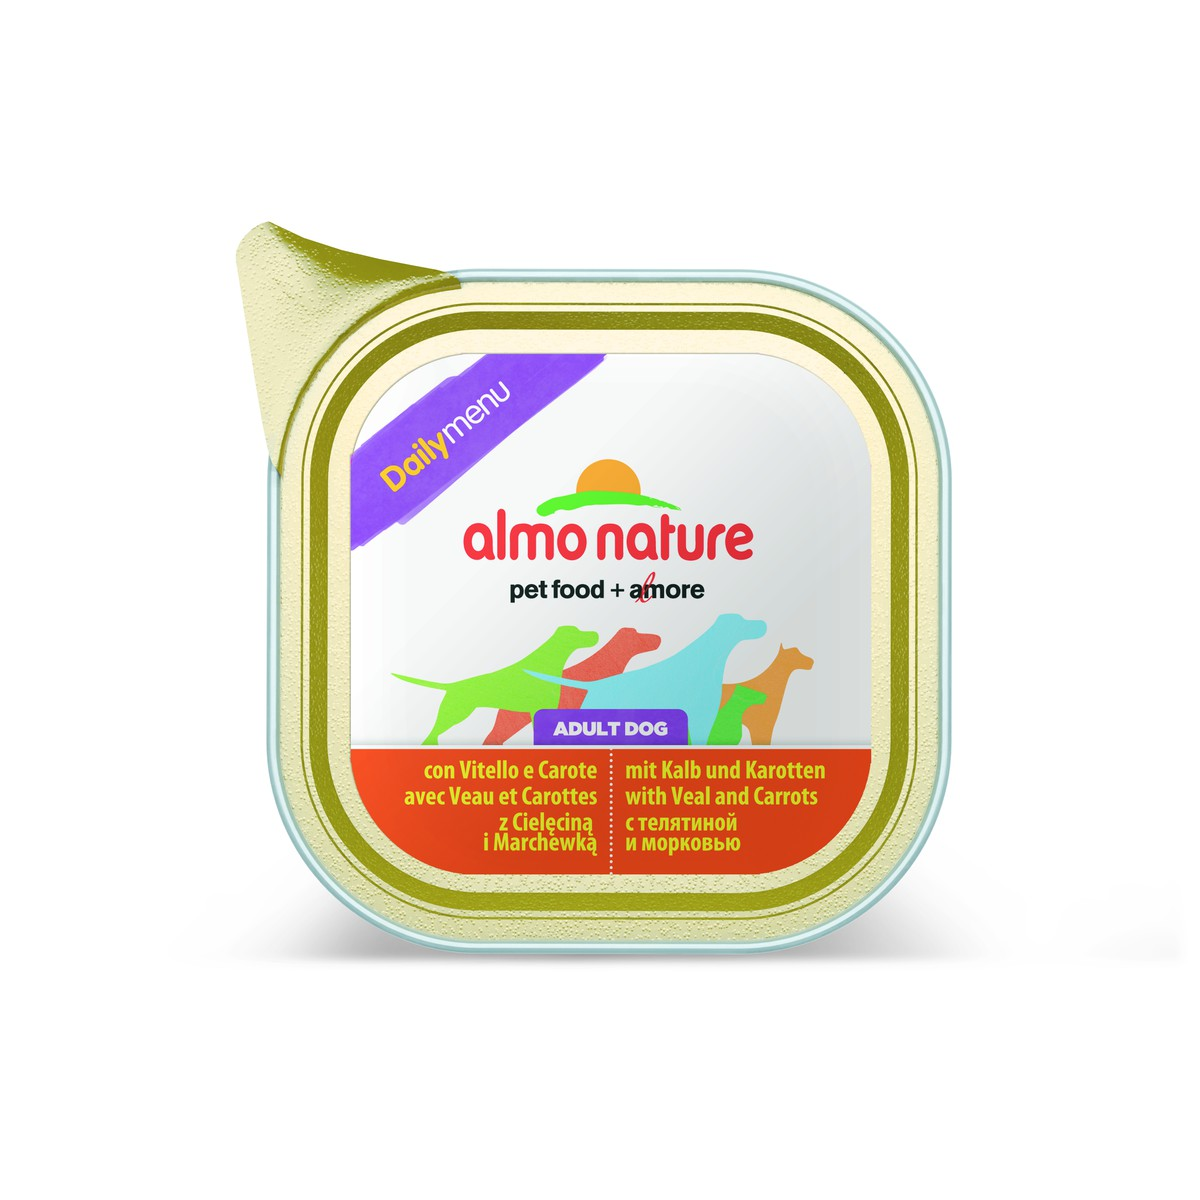 Almo nature  Almo nature PFC Dog daily menu Veau and Carottes 100g  100 g